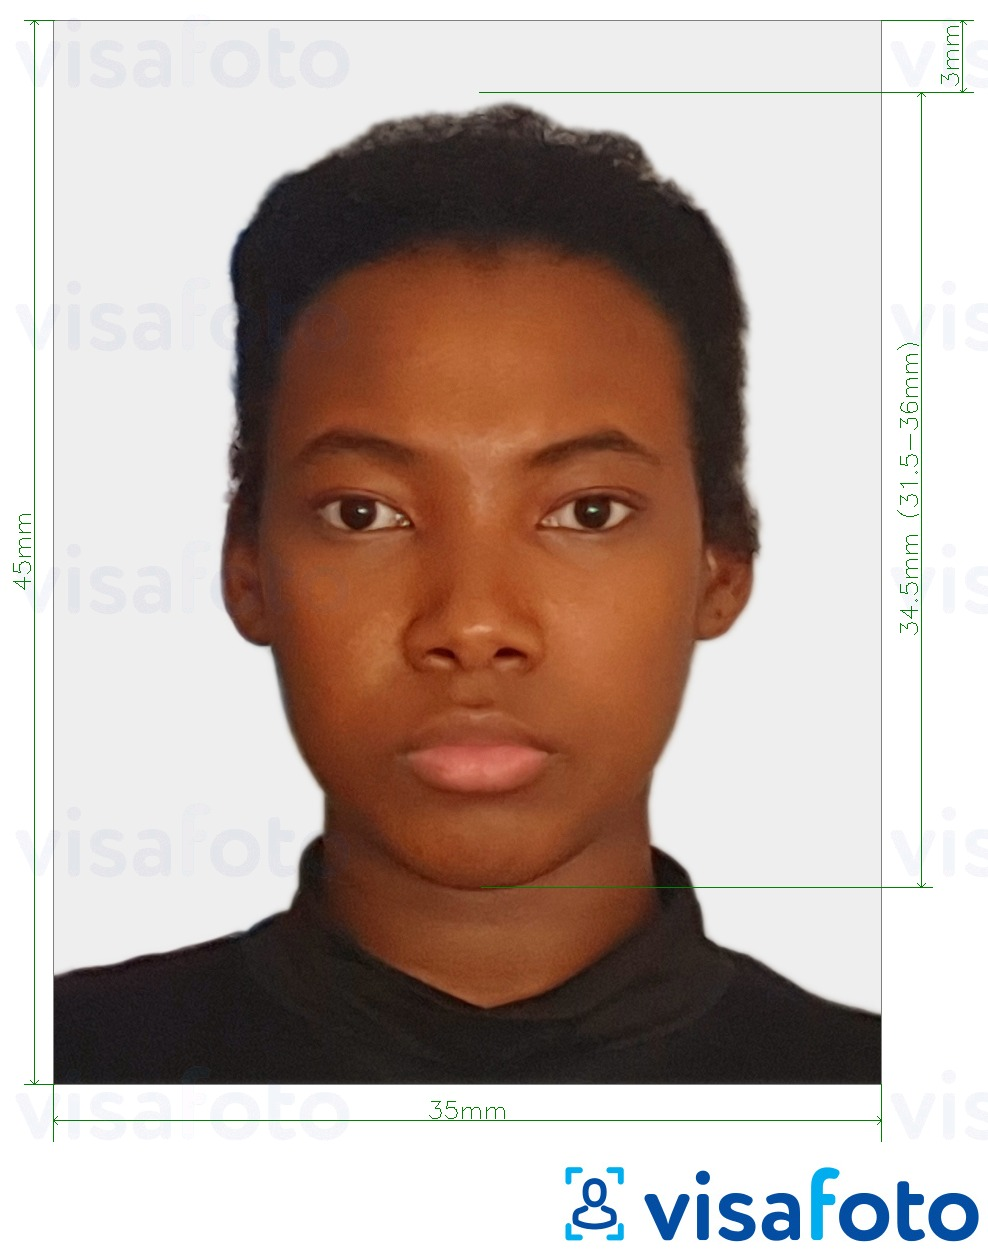 Example of photo for Suriname visa 45x35 mm (1.77x1.37 inch) with exact size specification